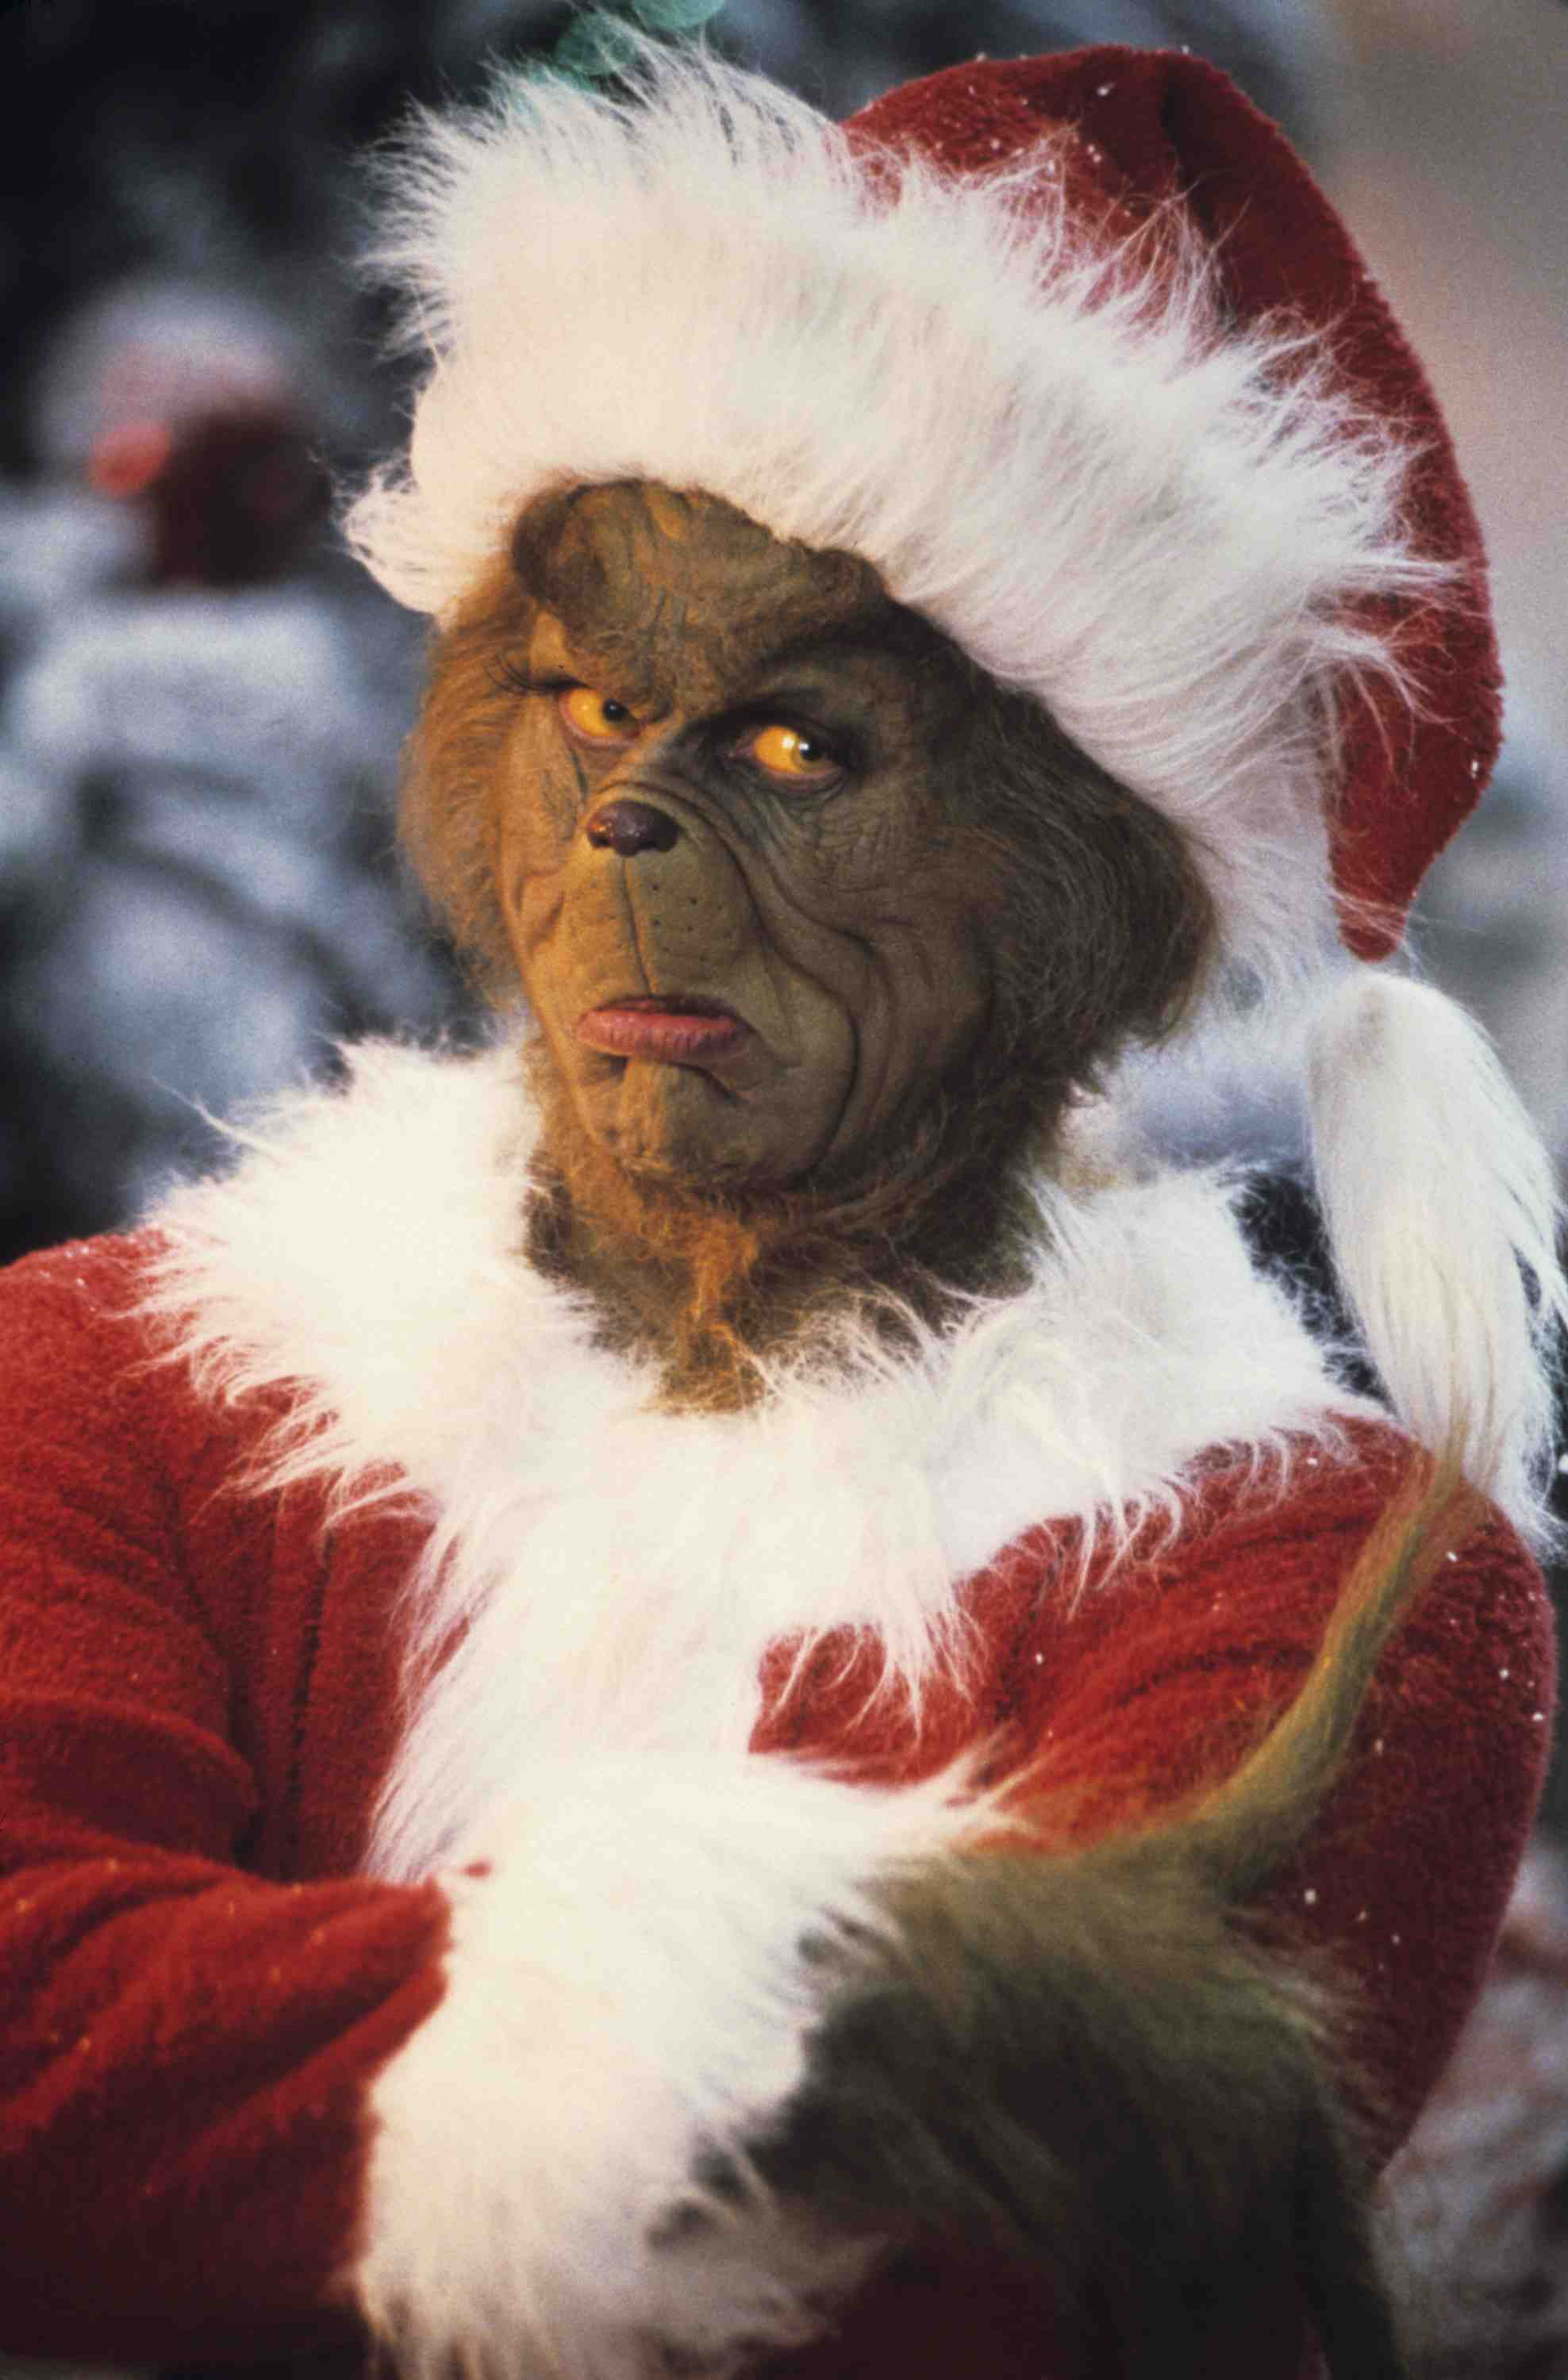 the grinch - photo #1